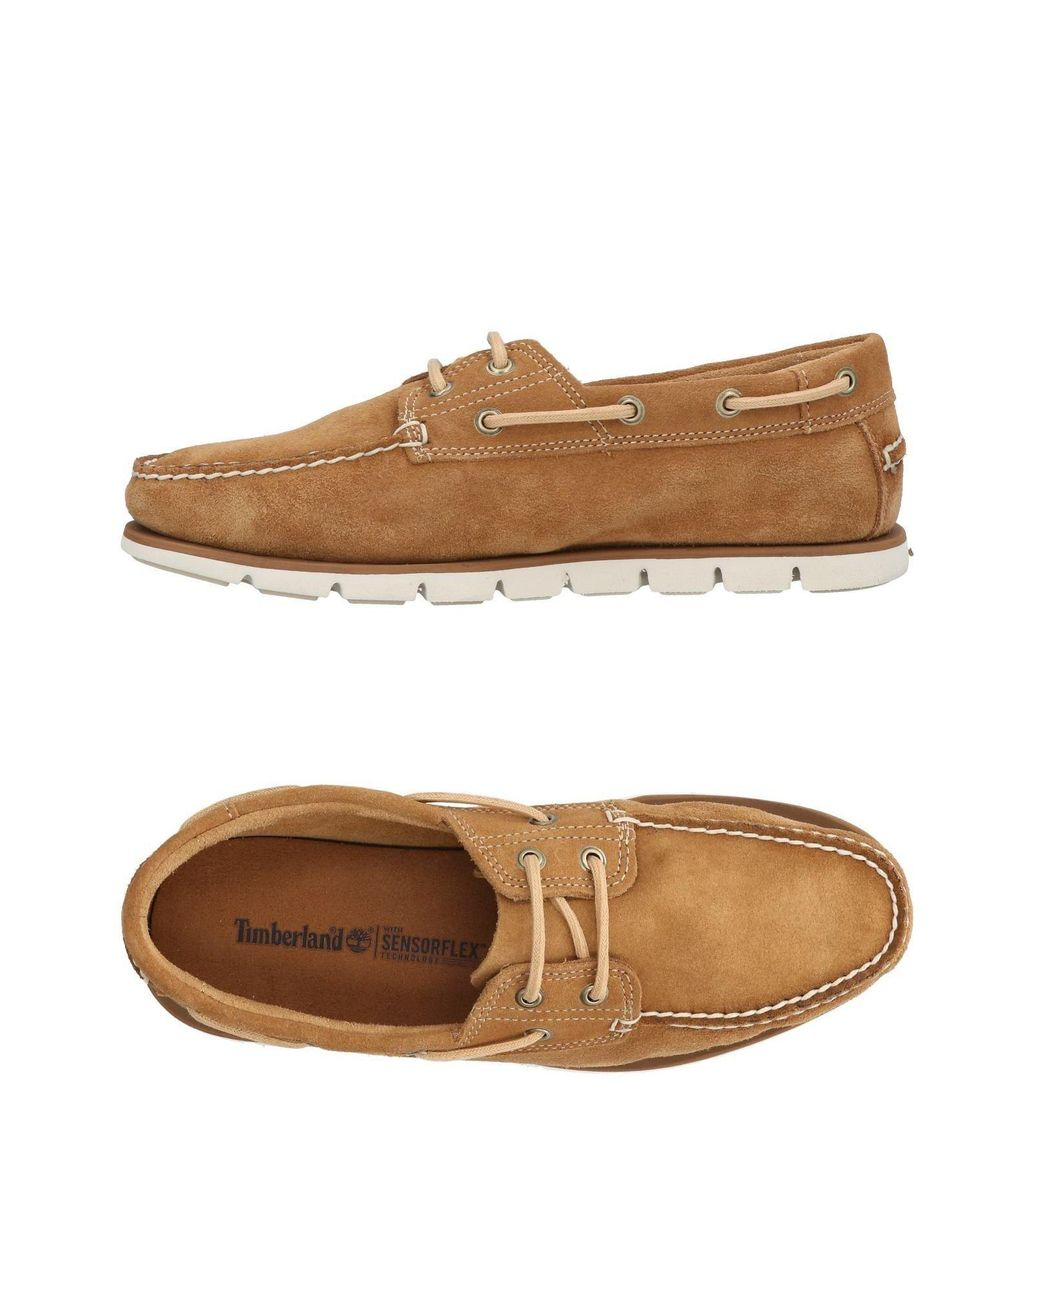 Timberland Mens Beige Loafer Loafers Slip On Smart Casual Formal suede Moccasins